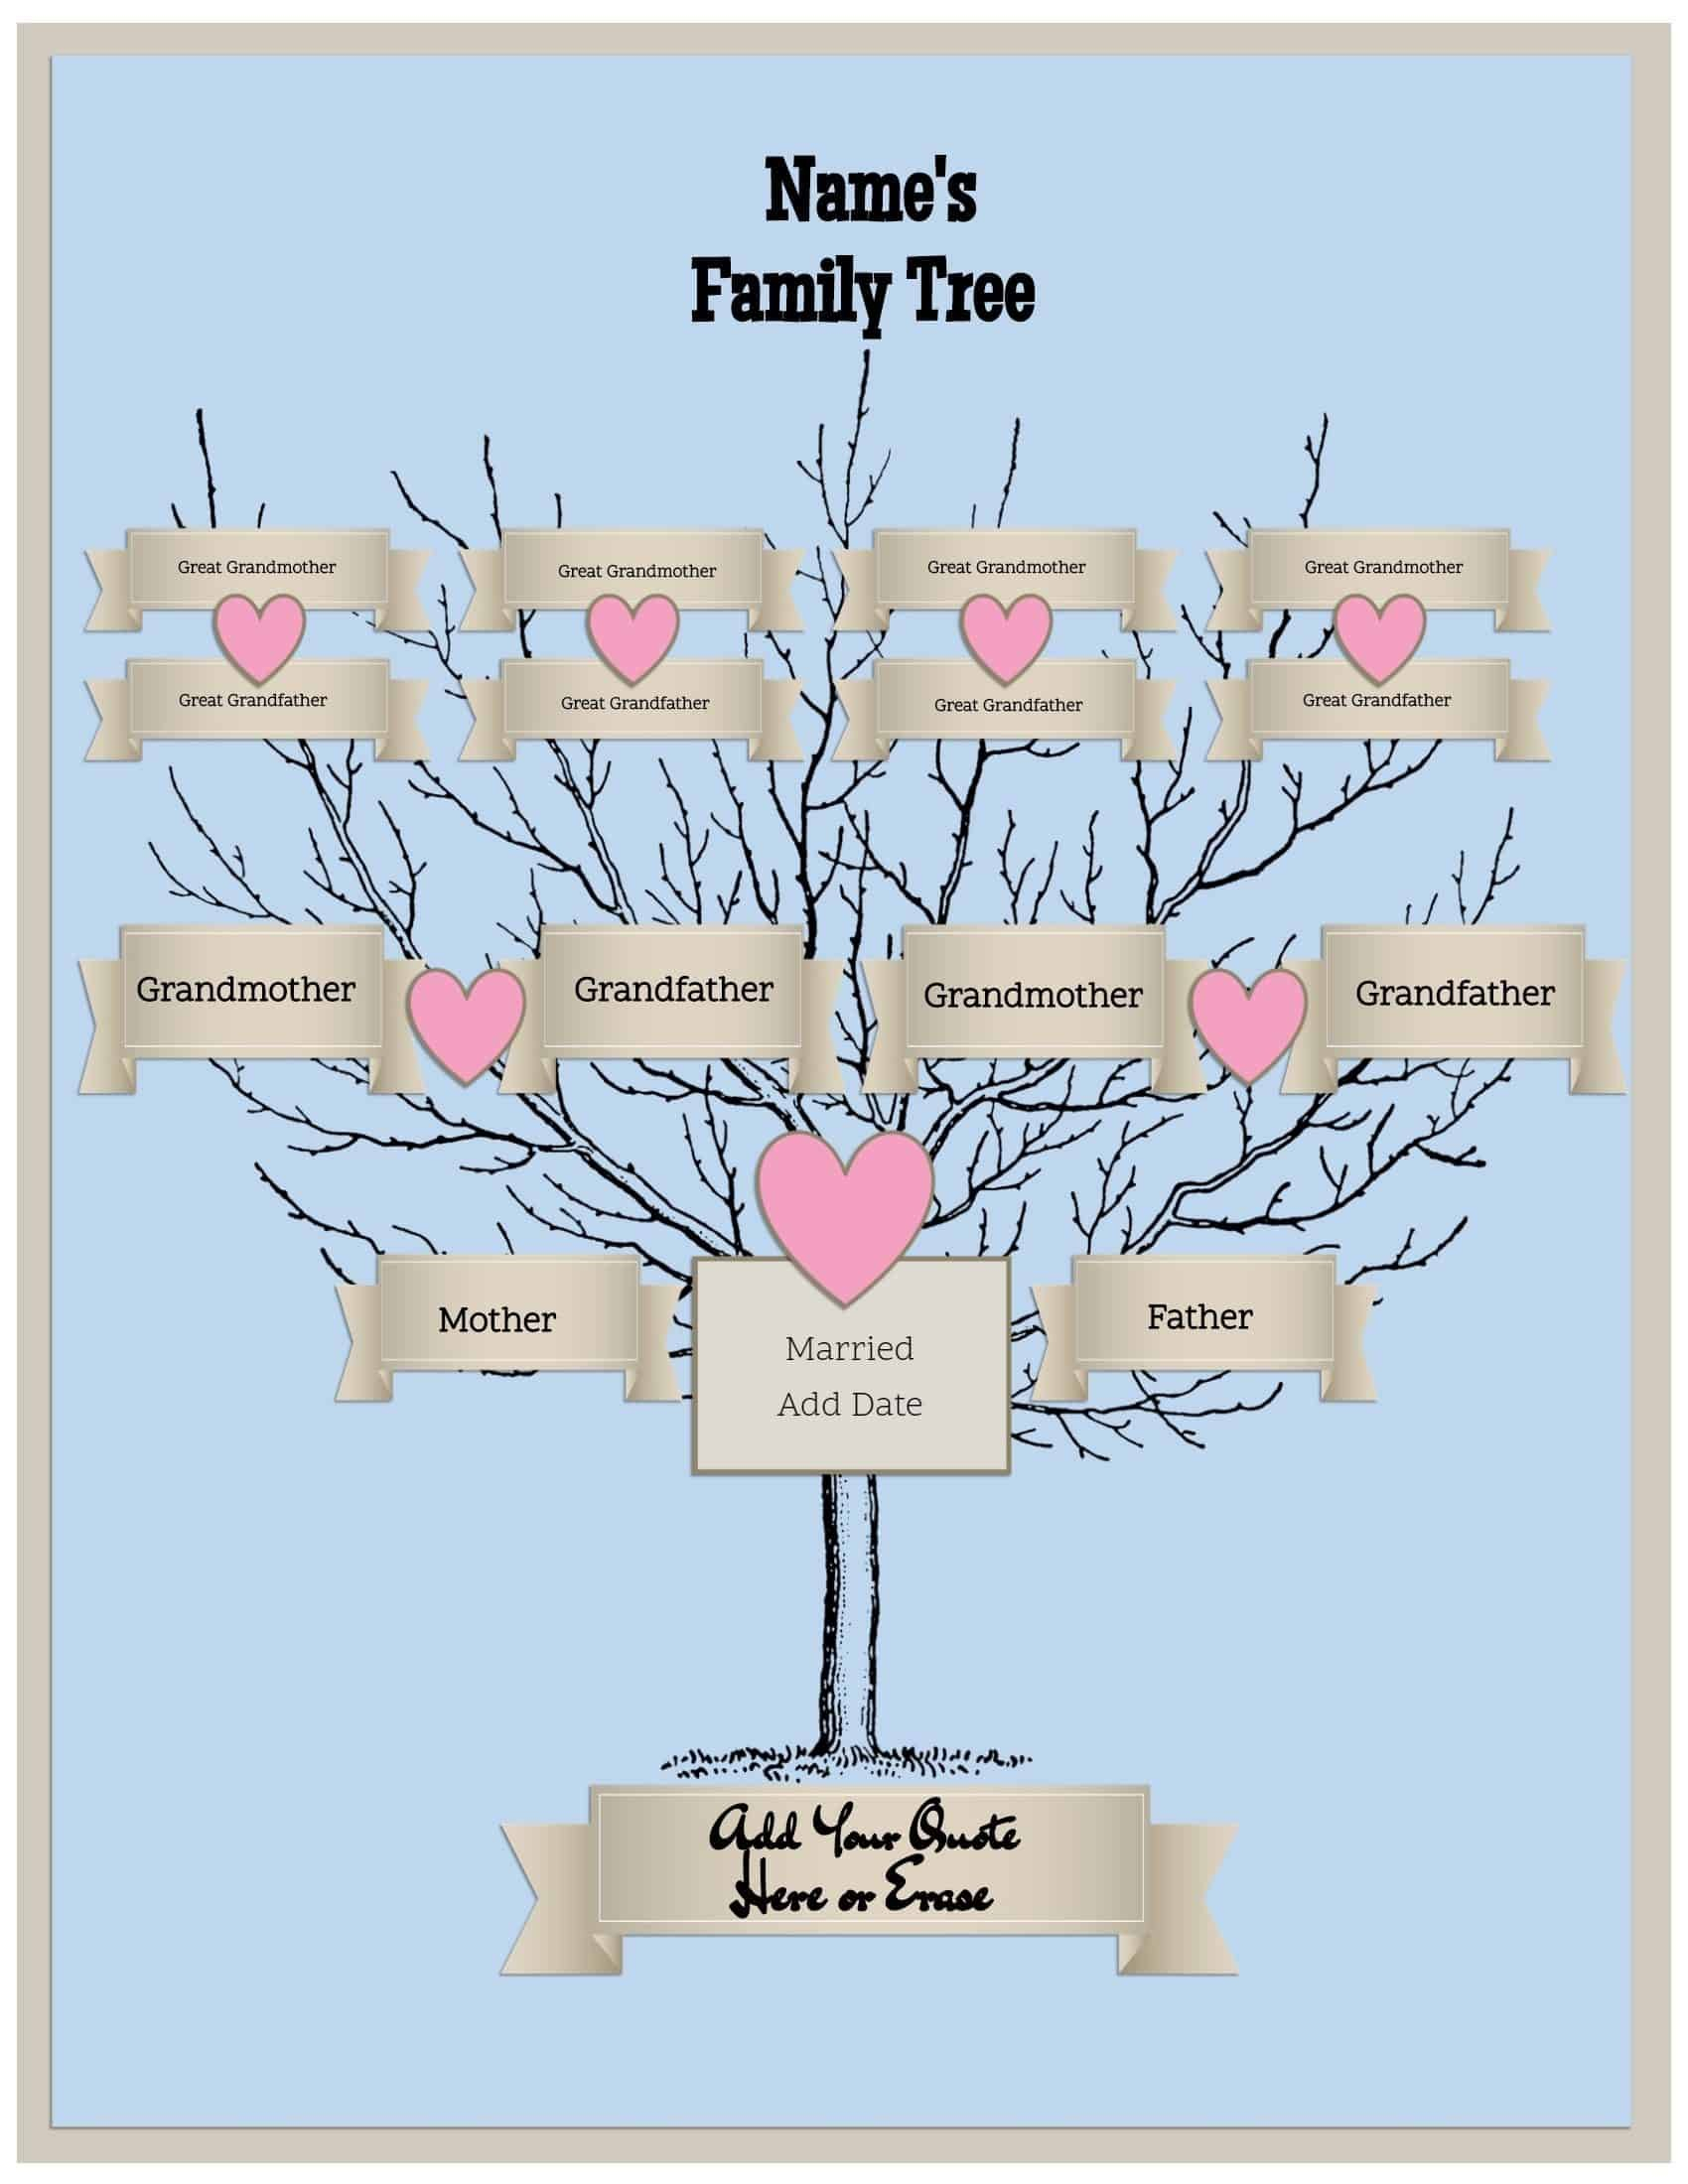 Generation Family Tree Generator  All Templates Are Free To Customize Throughout Blank Family Tree Template 3 Generations